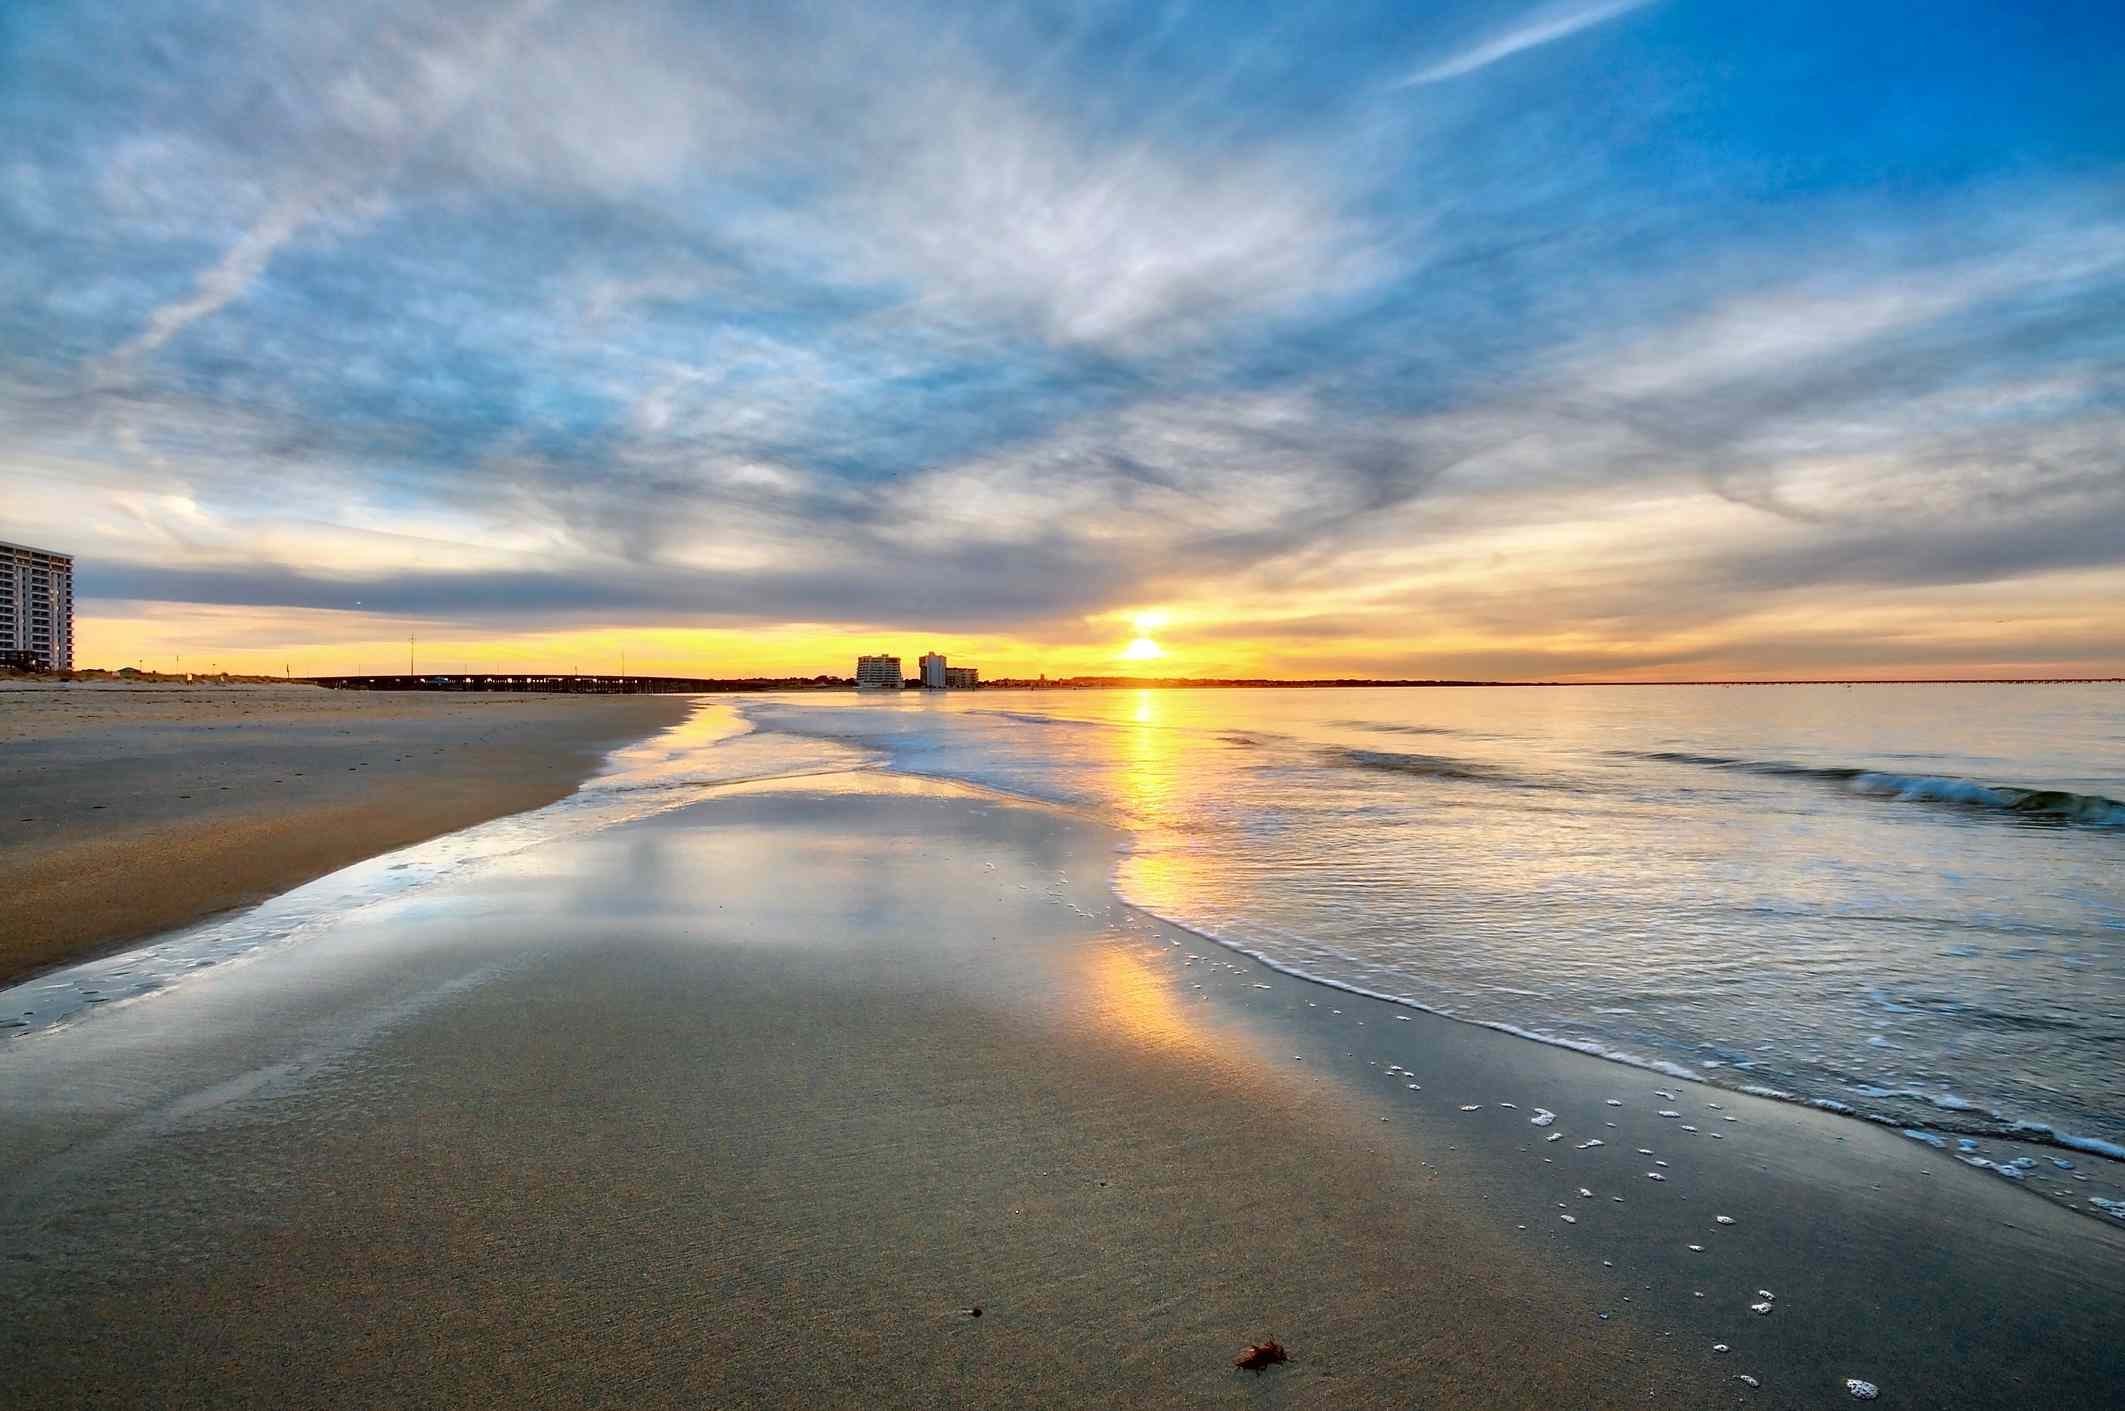 A colorful sunset on a calm tranquil sandy beach.